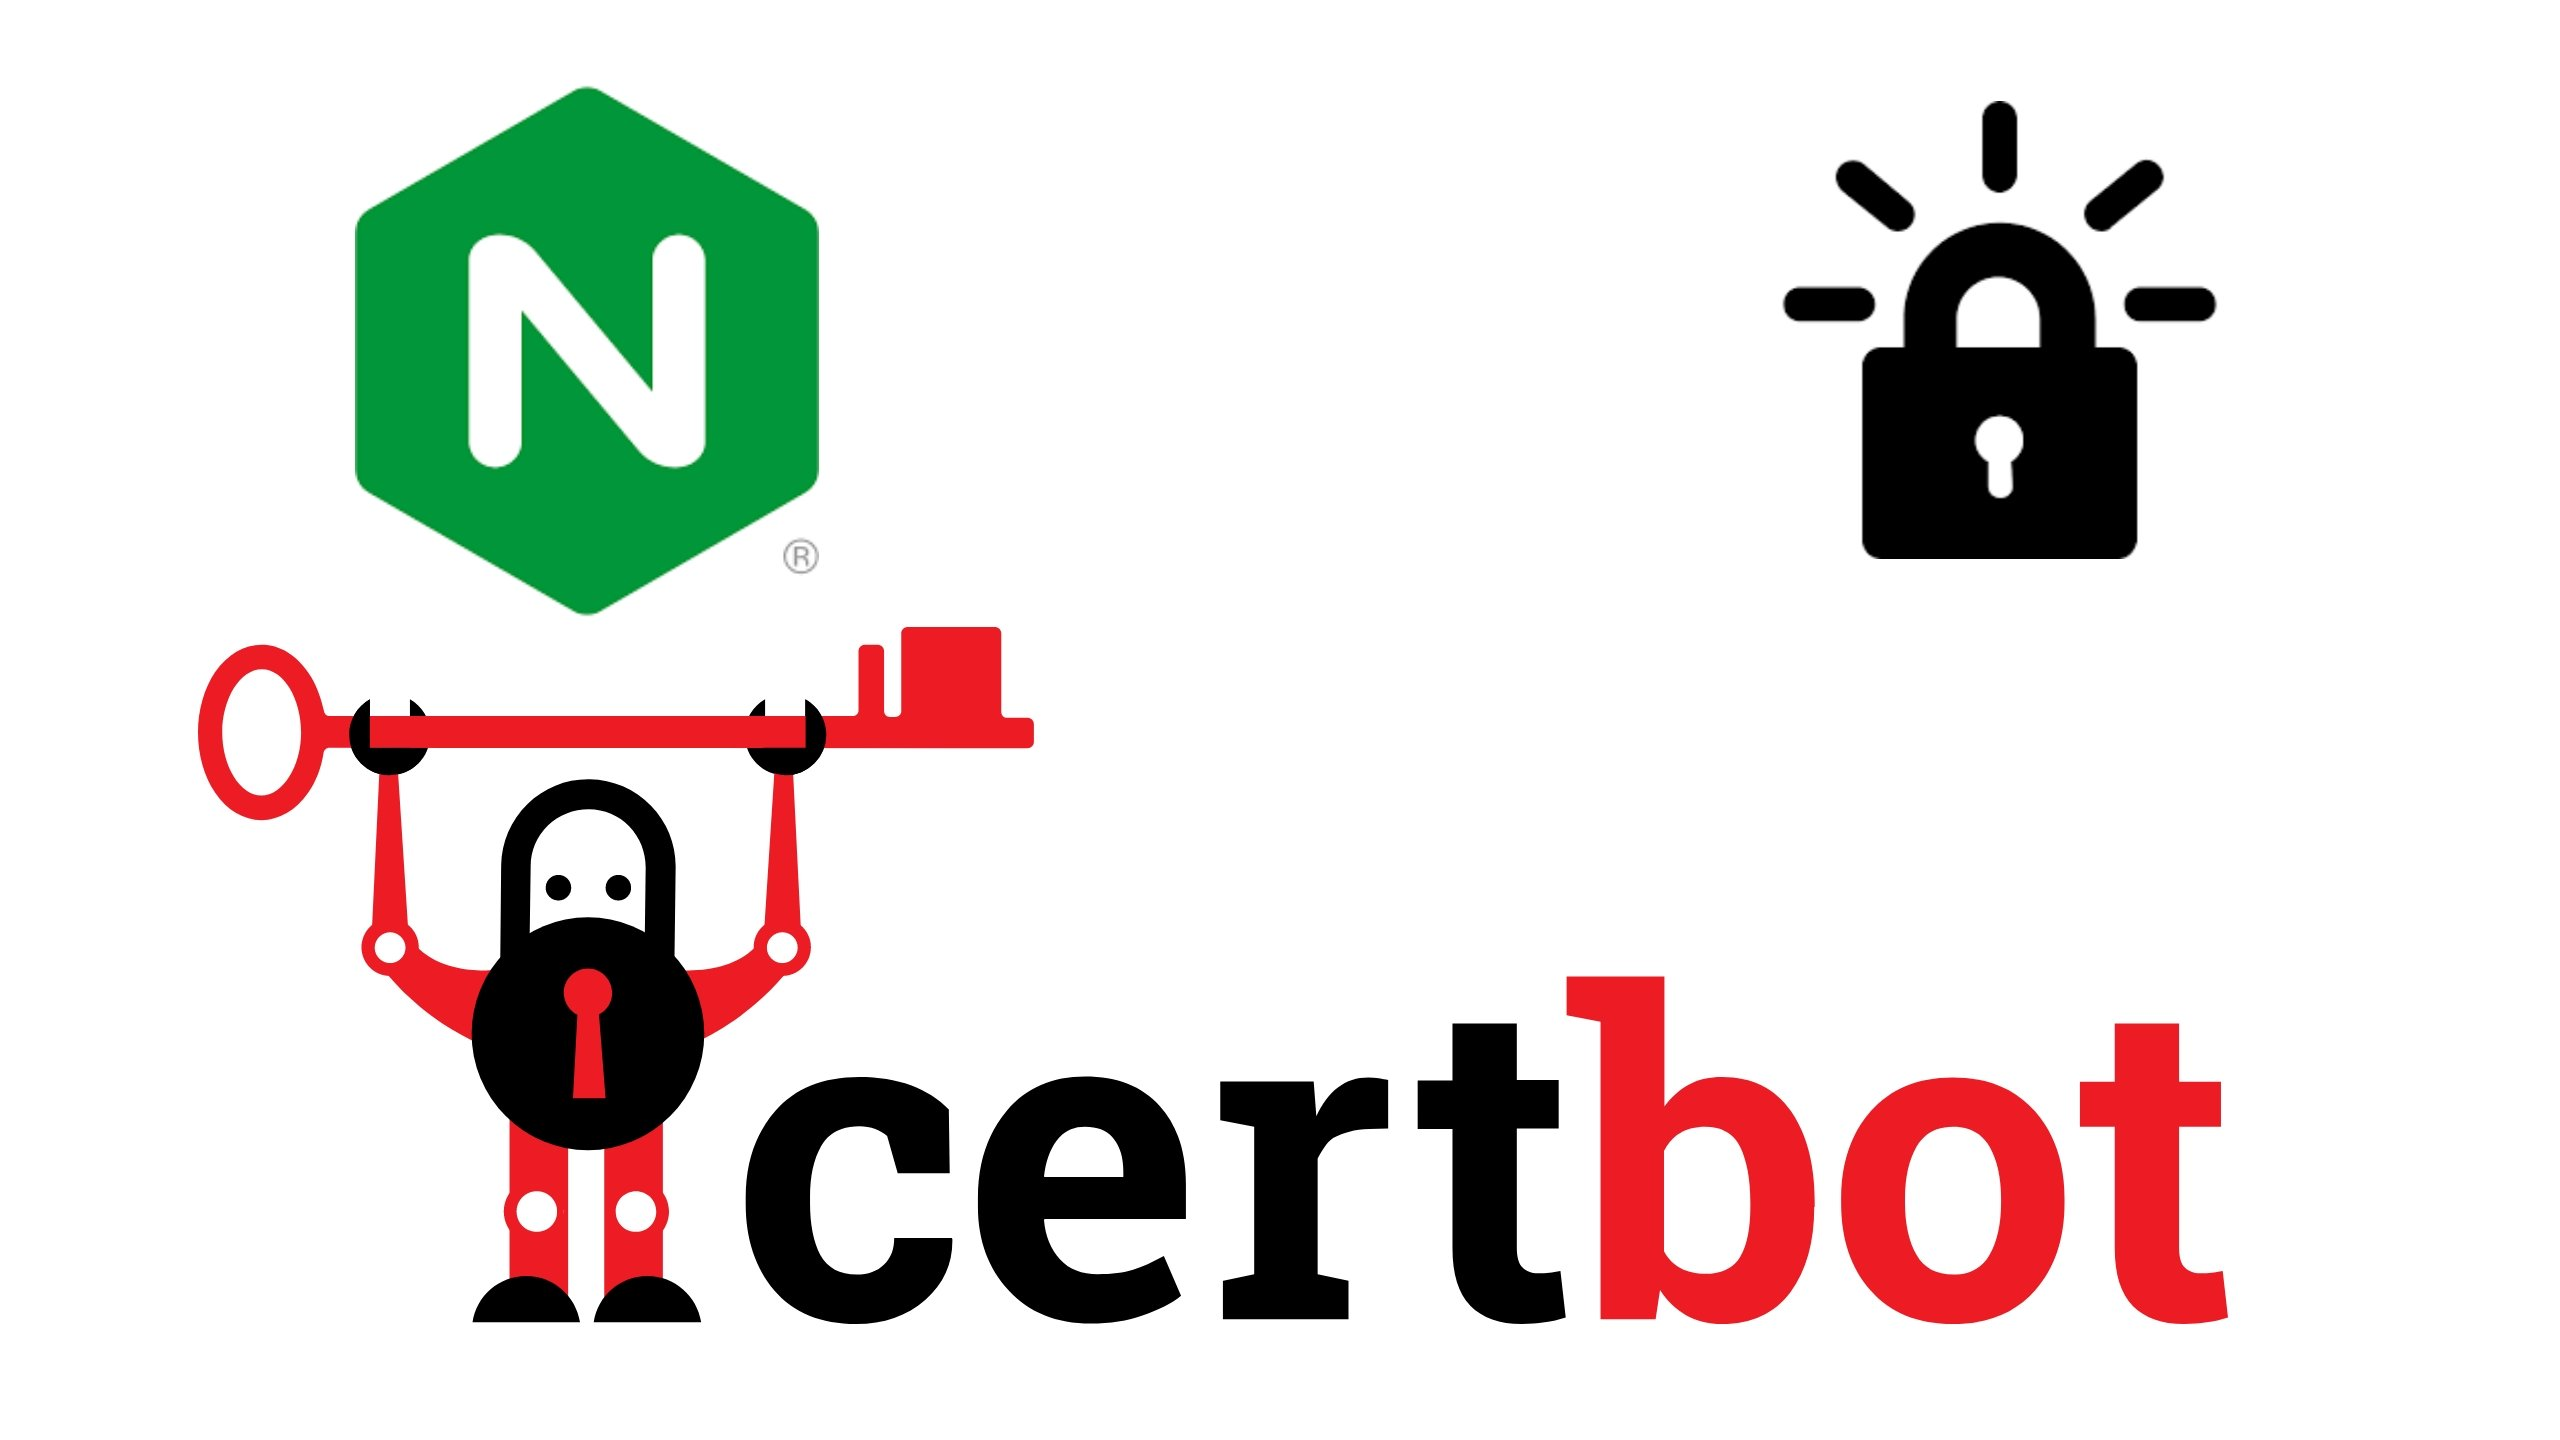 Nginx, Let's Encrypt and Certbot Logos